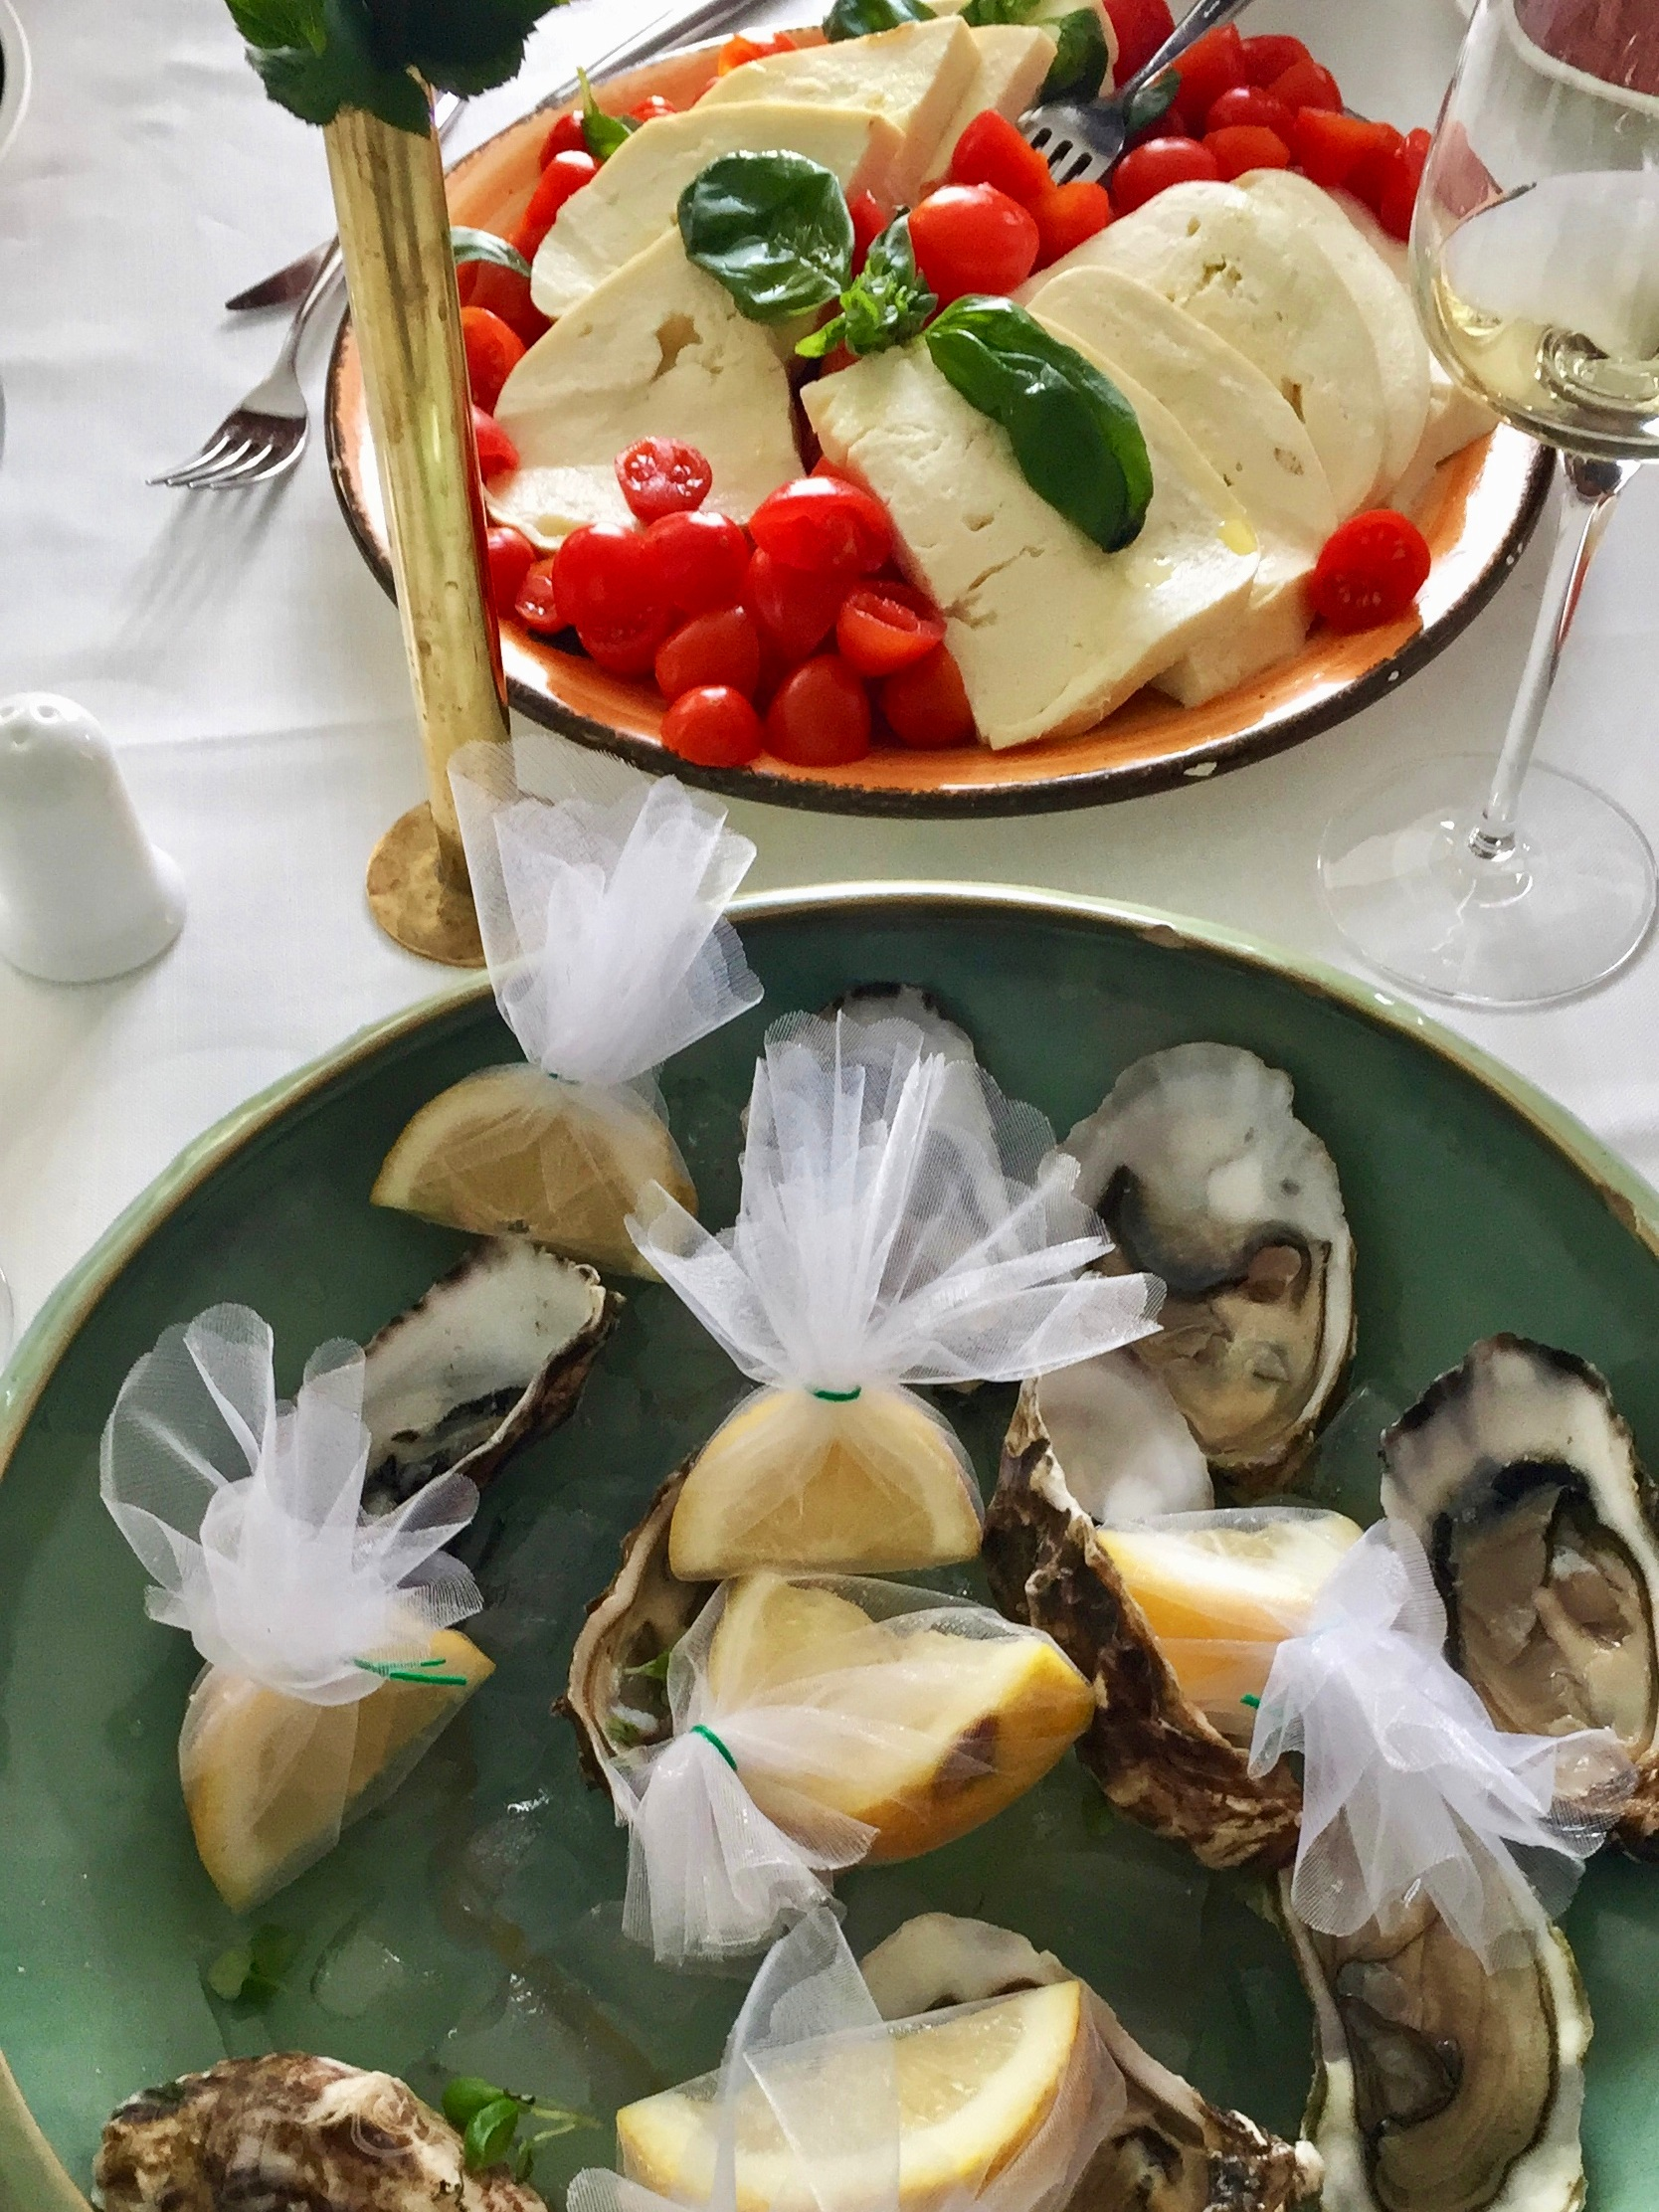 Top-class restaurant experiences - Terrazza Calabritto, Naples